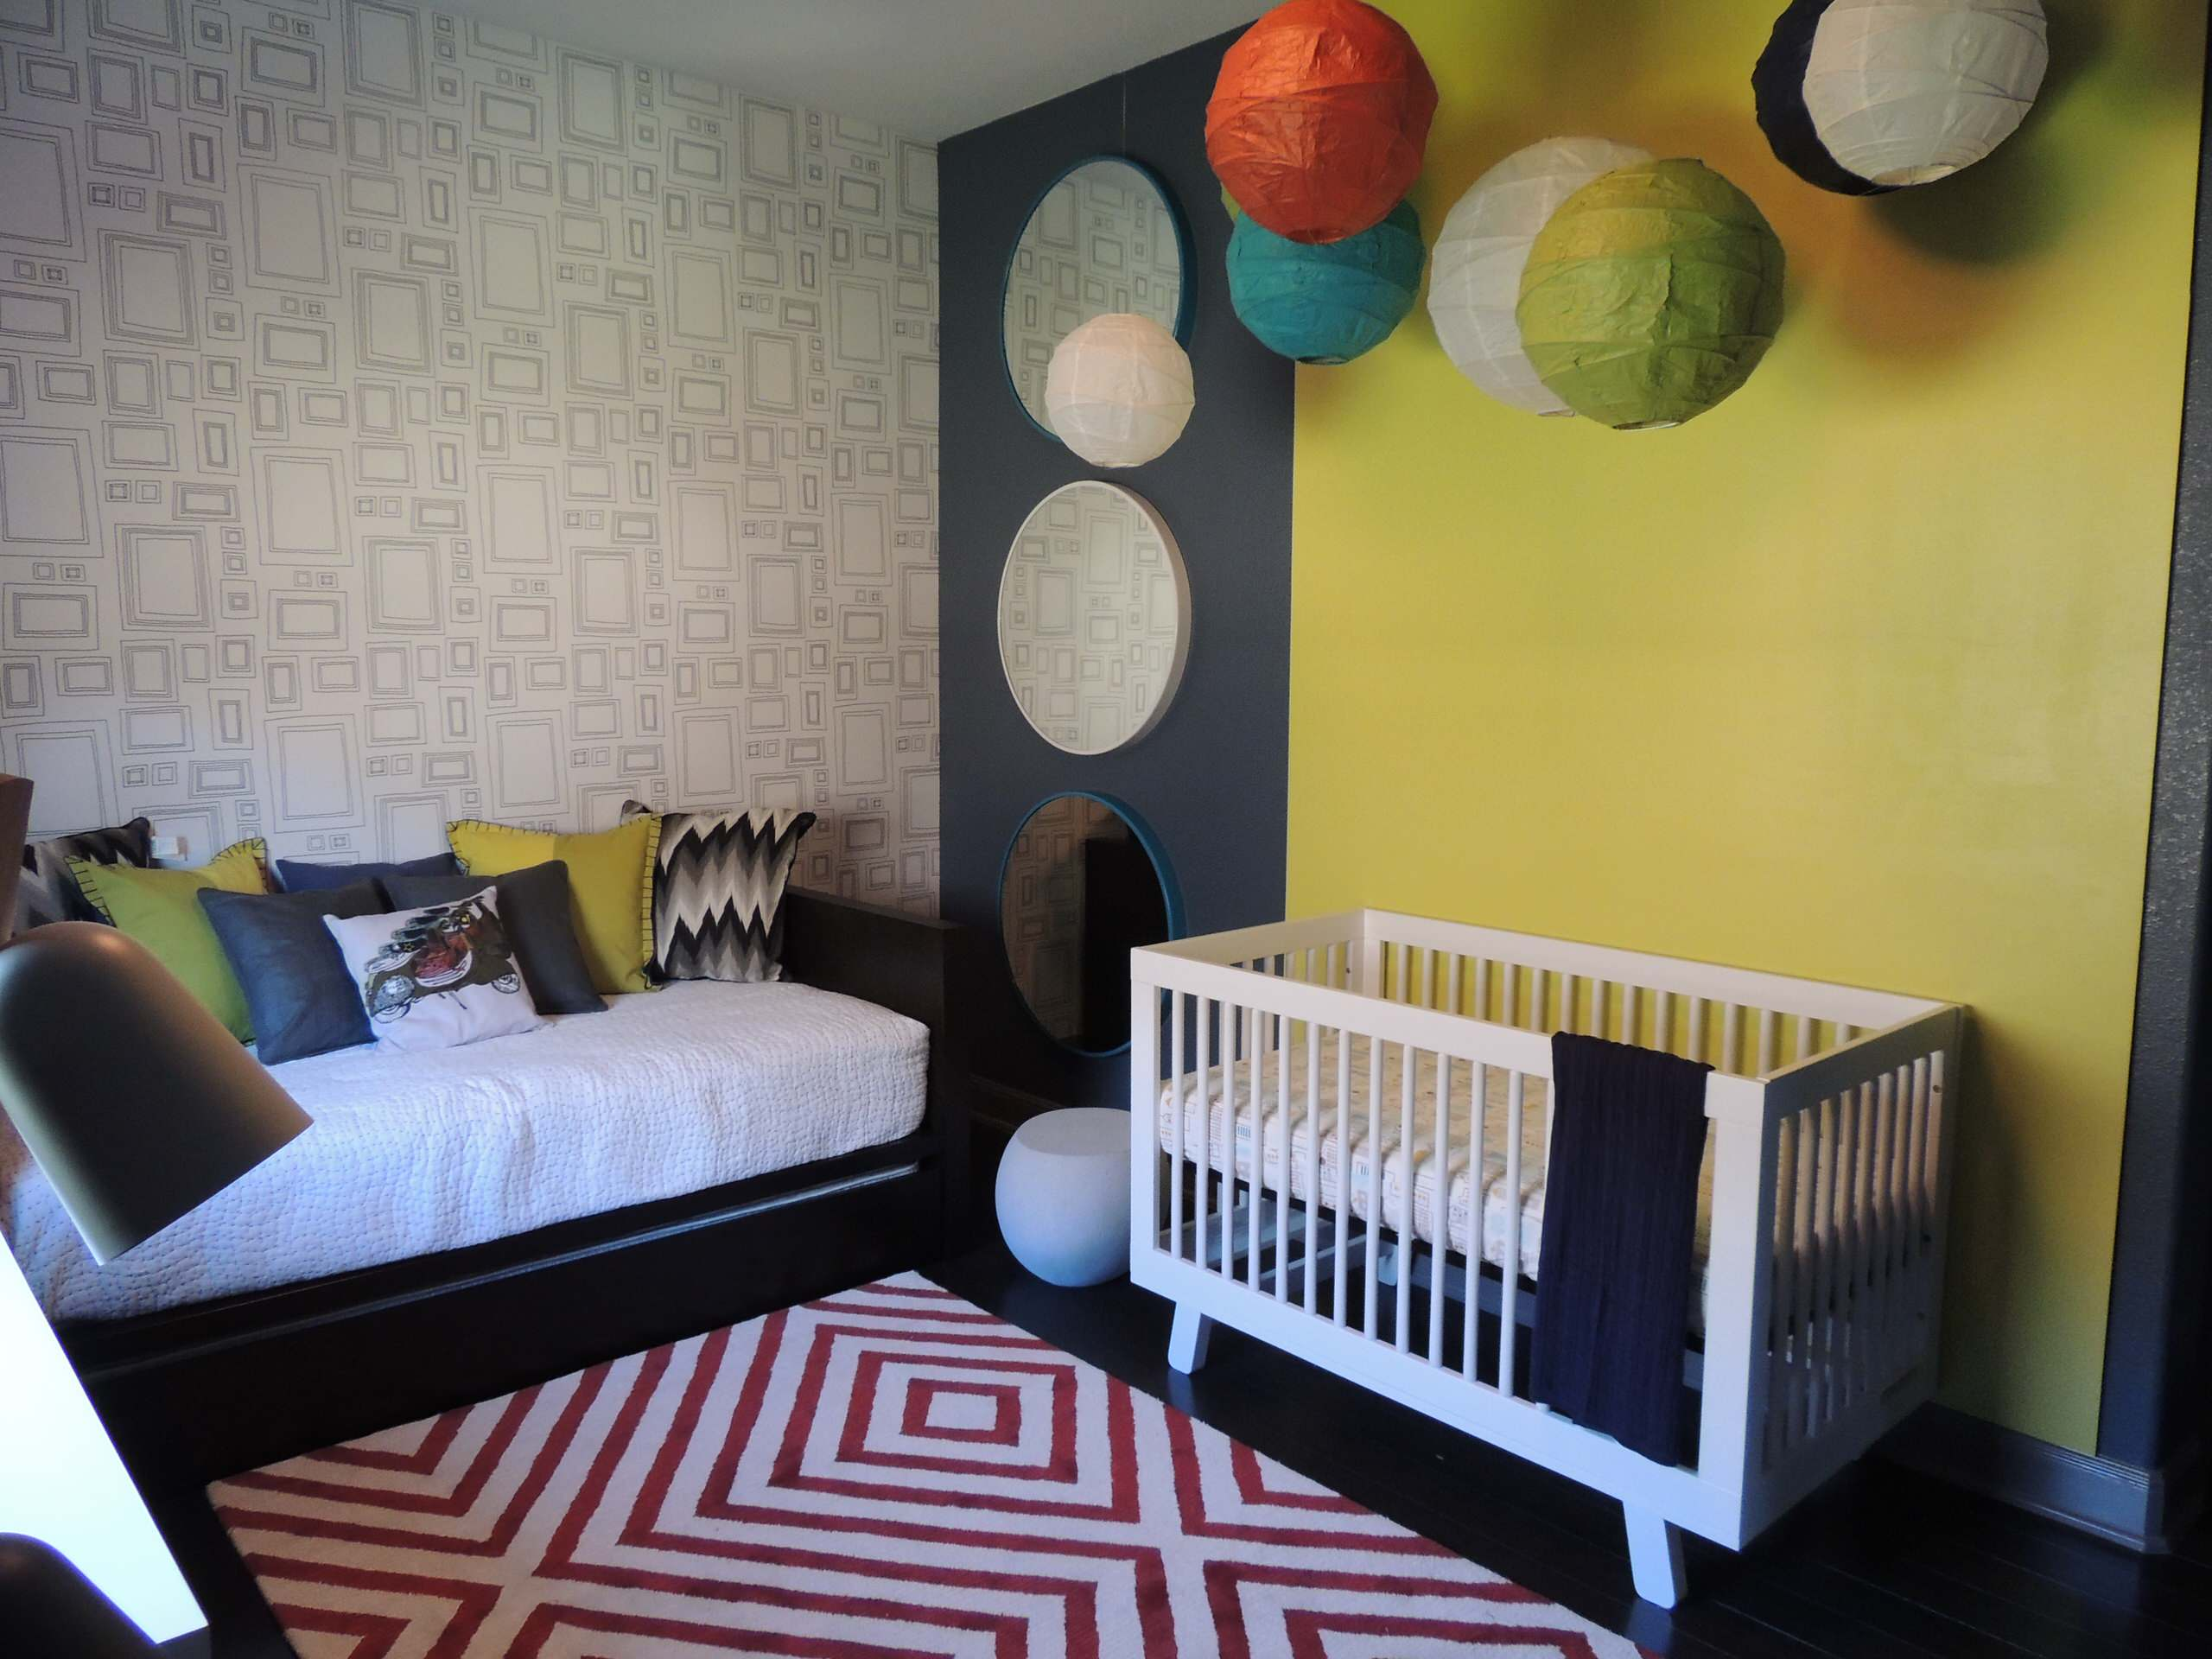 Modern Nursery With Modern Daybed Plus Decorative Pillows For Couches And Circle Mirrors Also Colorful Paper Lanterns With Frames Wallpaper For Guest Room Plus Interior Design